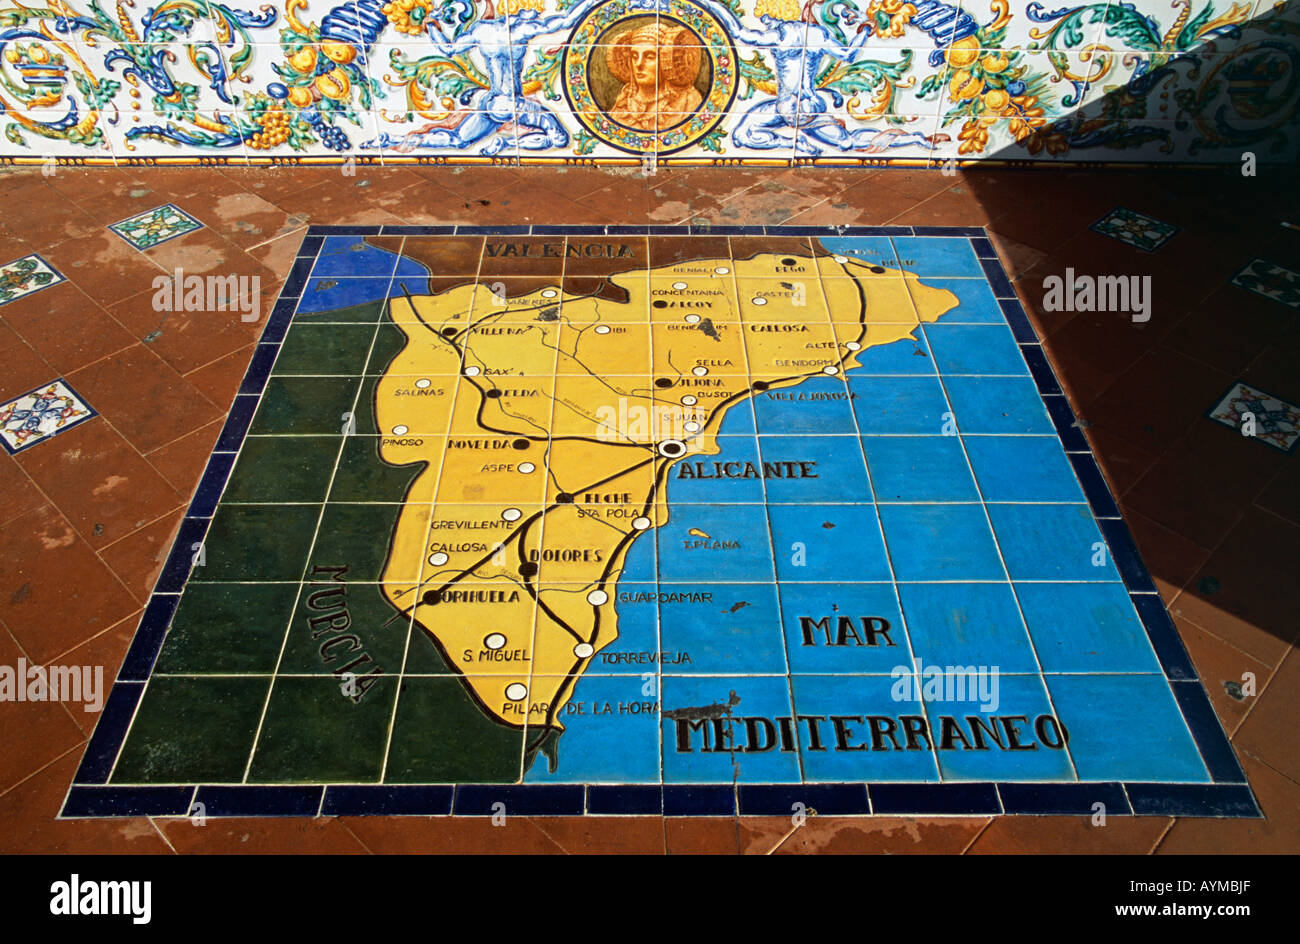 Map Of Spain Alicante Area.Tiled Panel On The Ground Depicting Map Of Alicante Region Of Spain